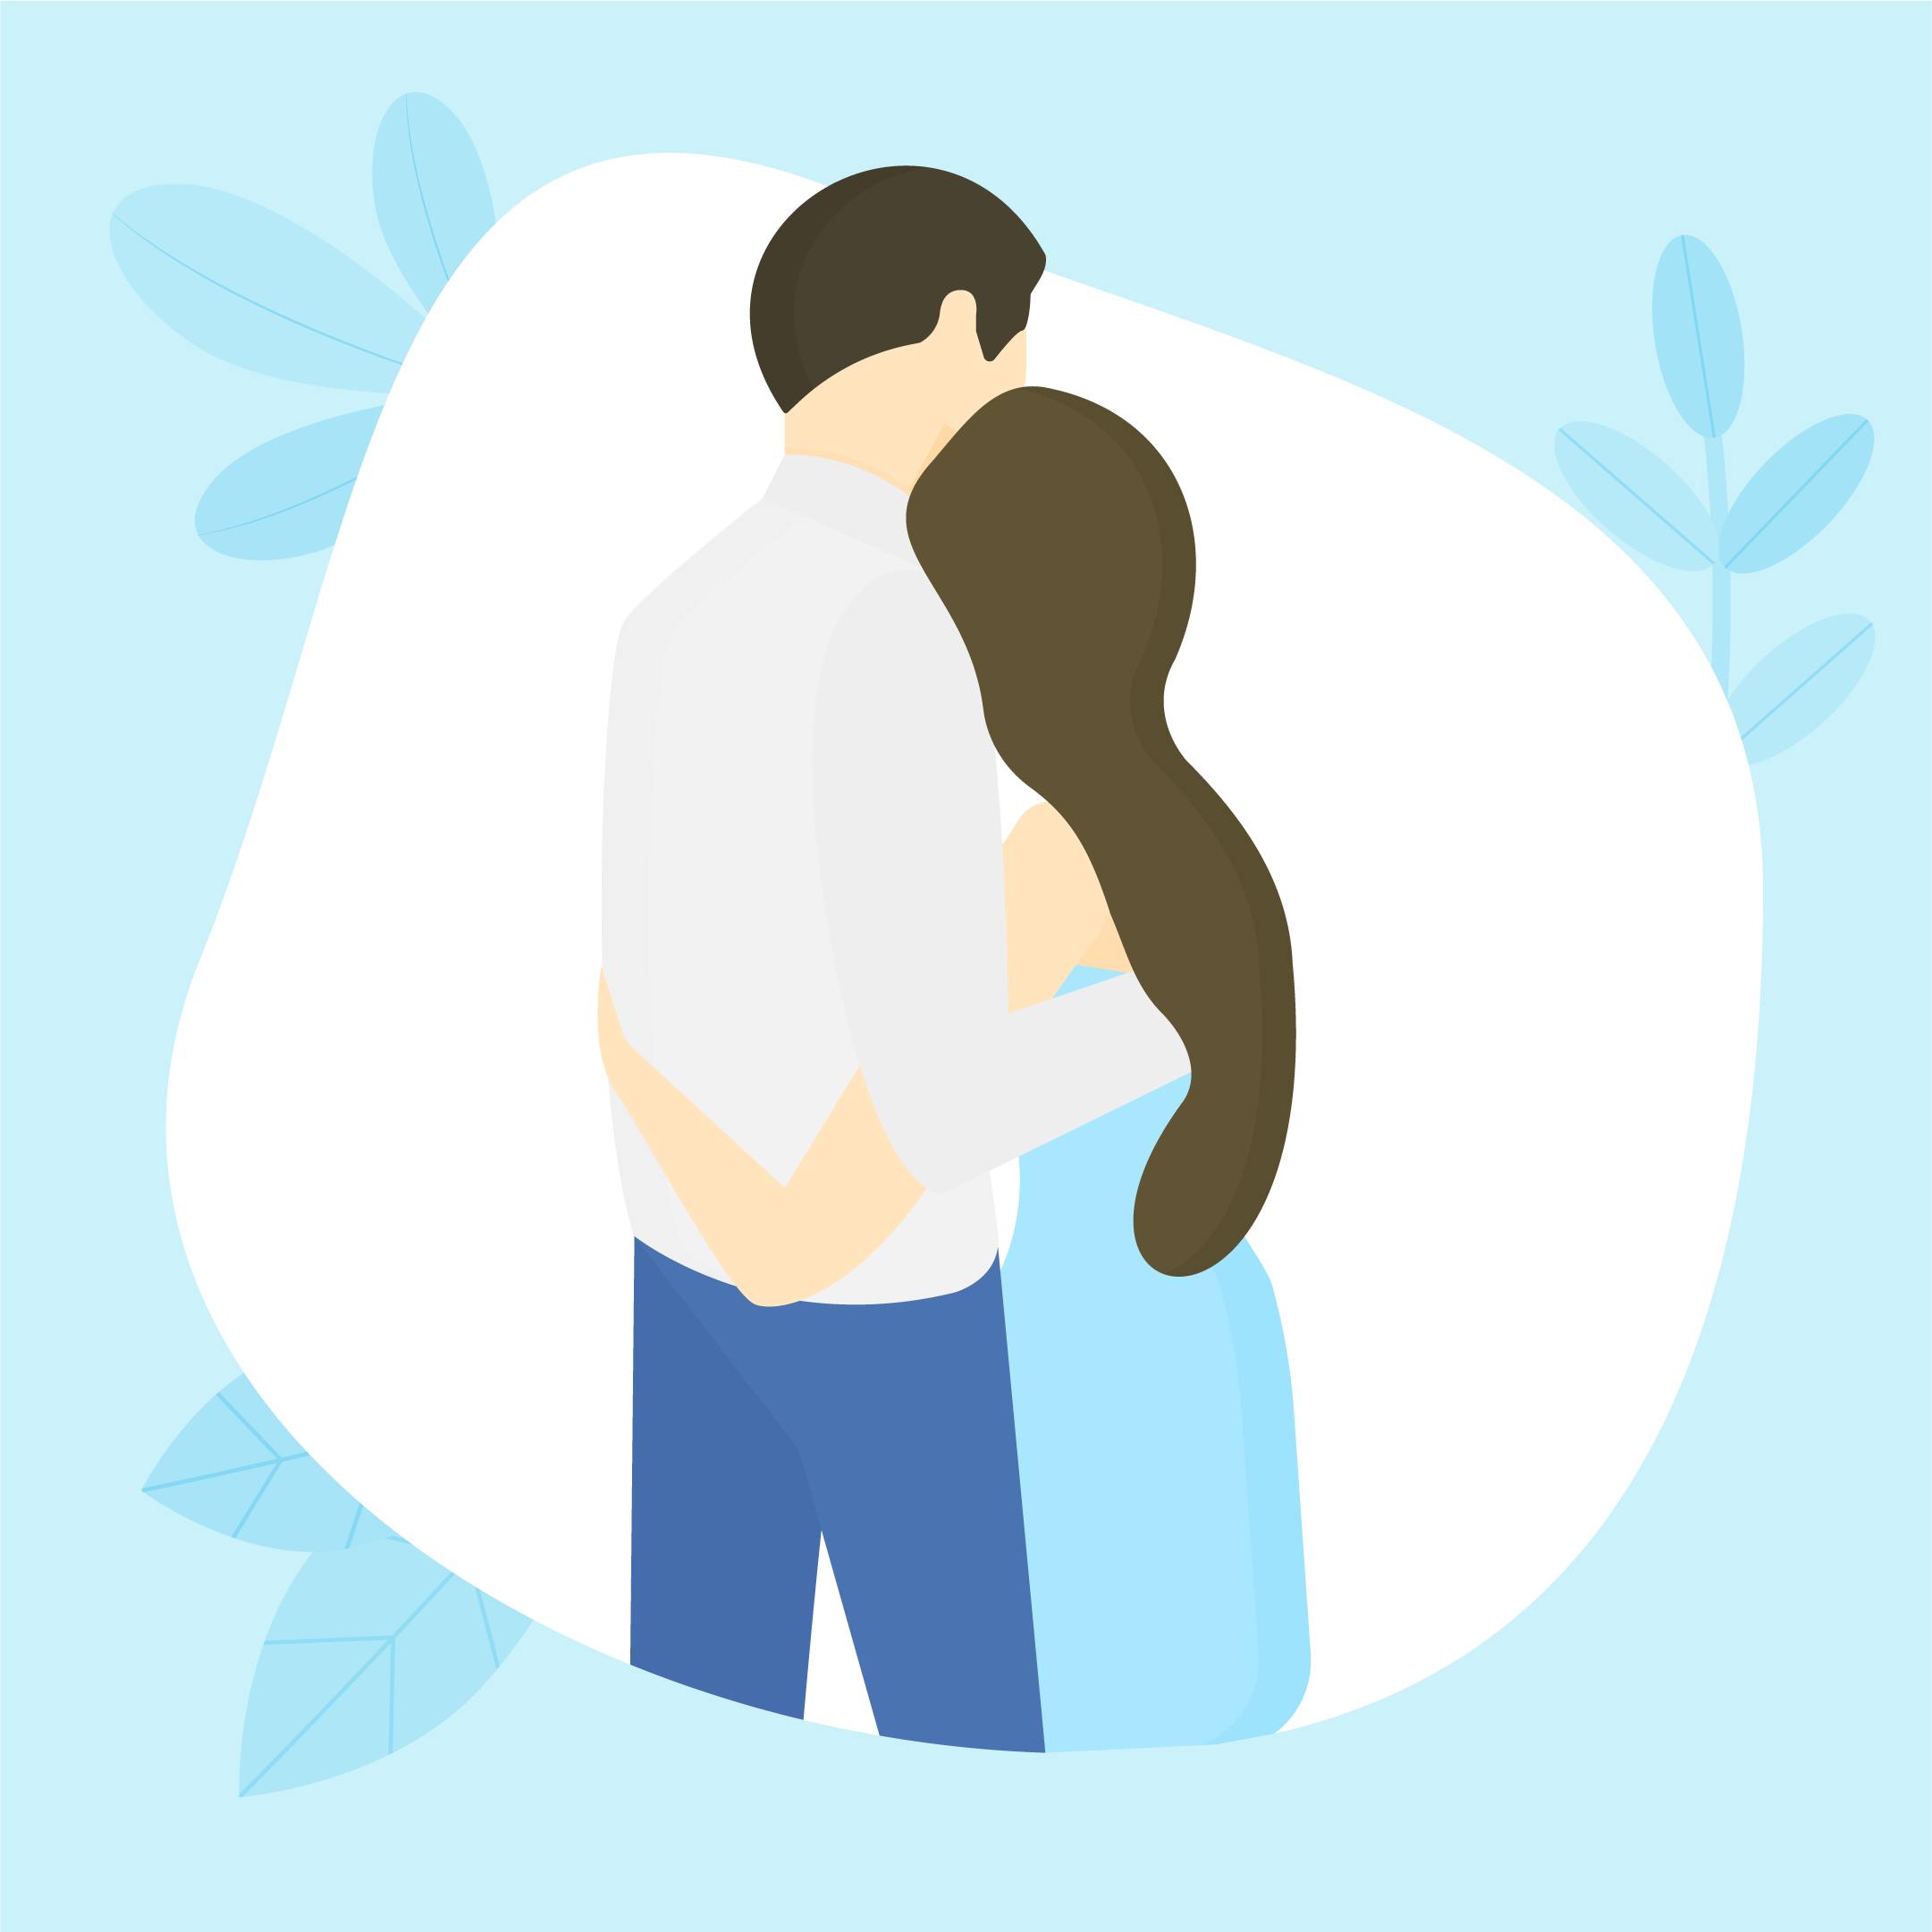 Vector illustration of a married couple hugging on their wedding day with leaves in the background in flat design style